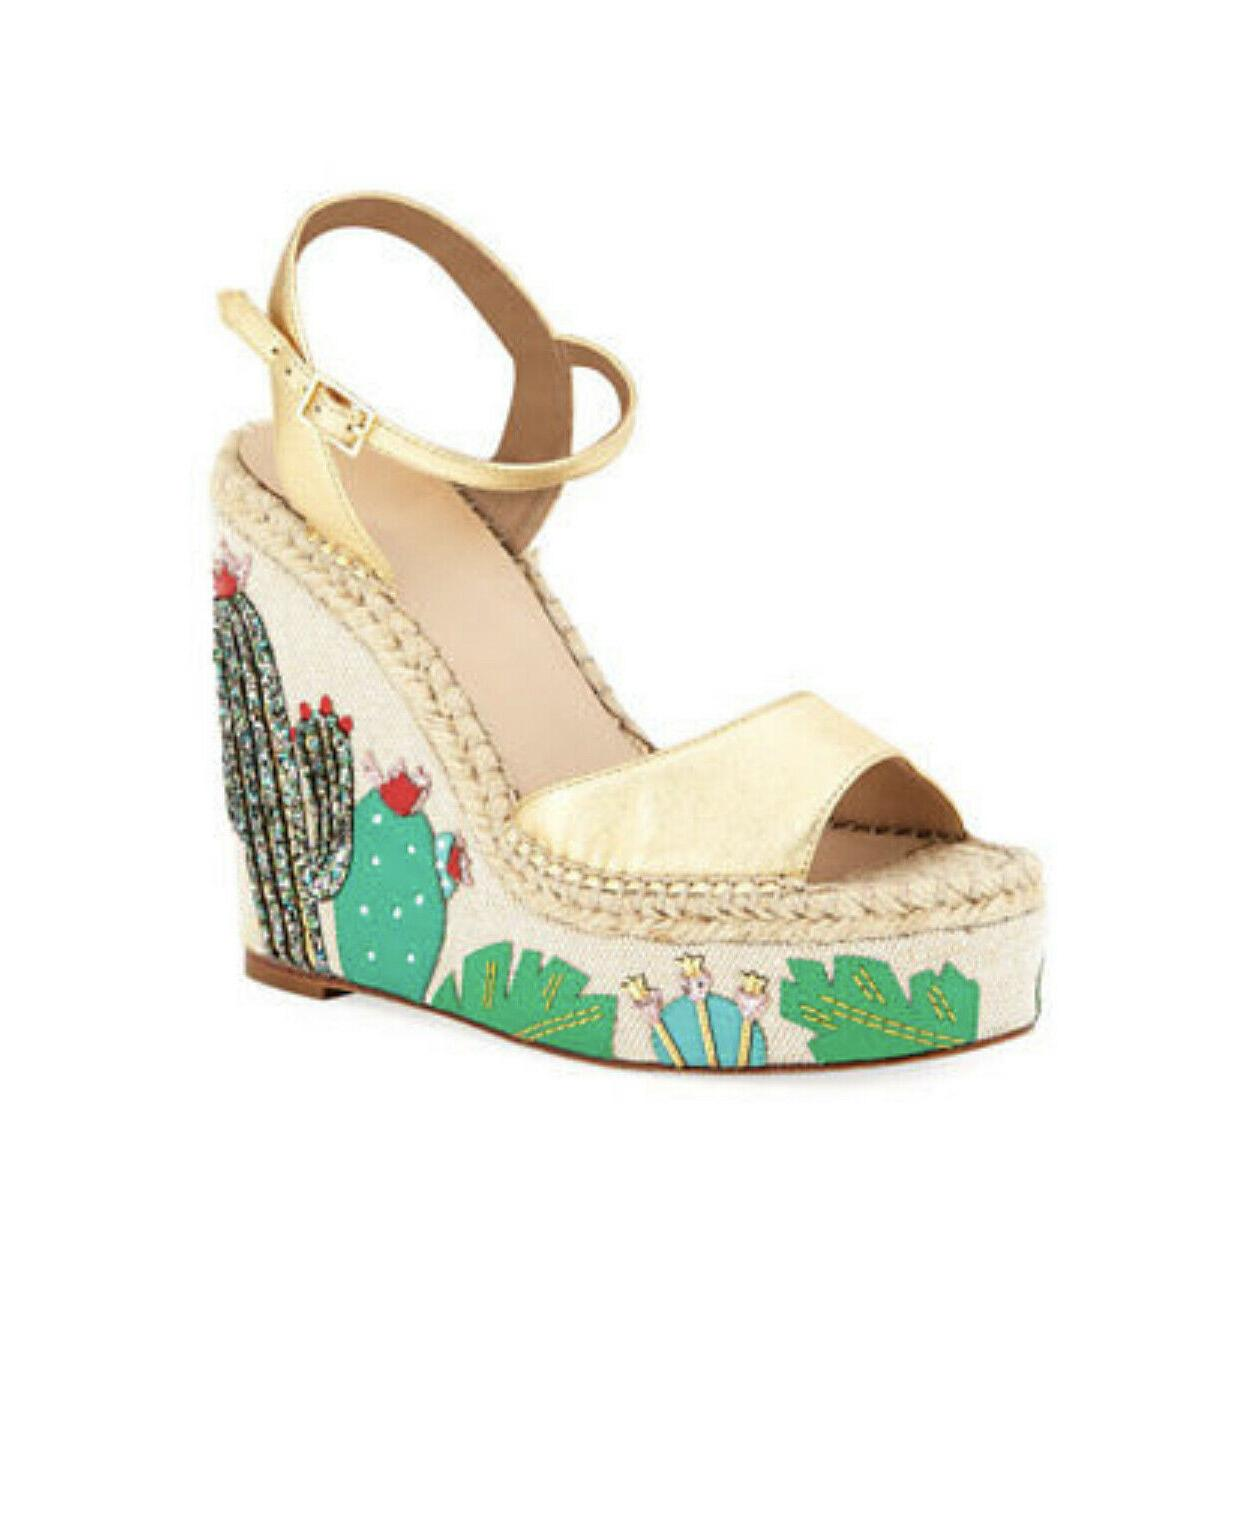 KATE NEW size 11 CACTUS WEDGE ankle gold